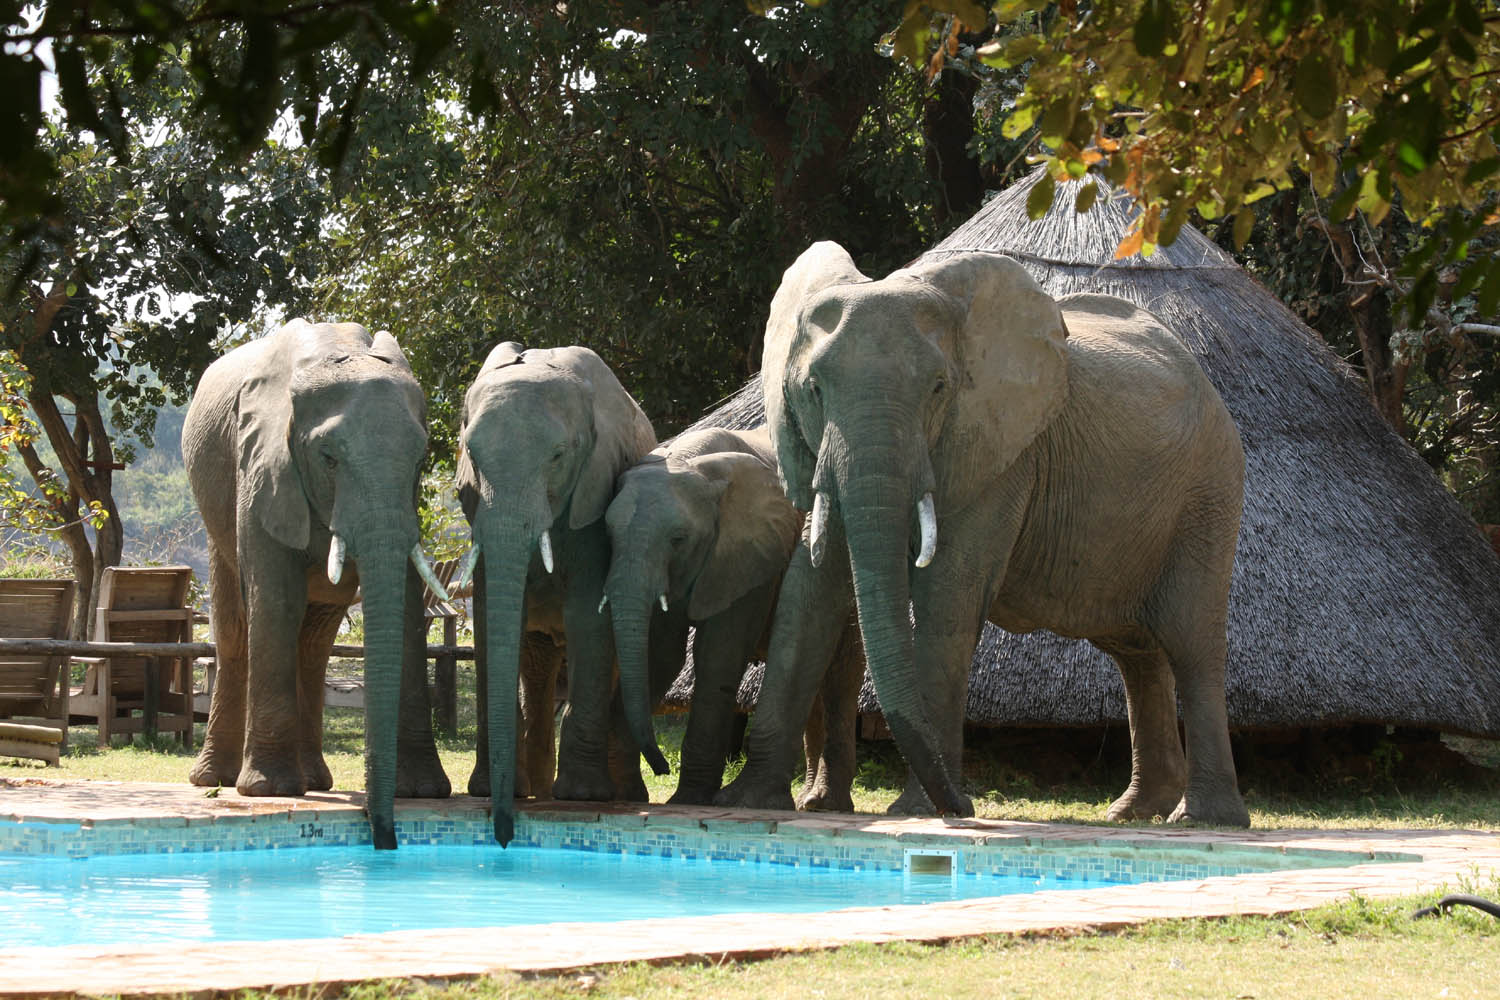 flatdogs-camp-zambia-in-style-tours-safari-packages-lodges-explore-south-luangwa-national-park-elephants-drinking-pool